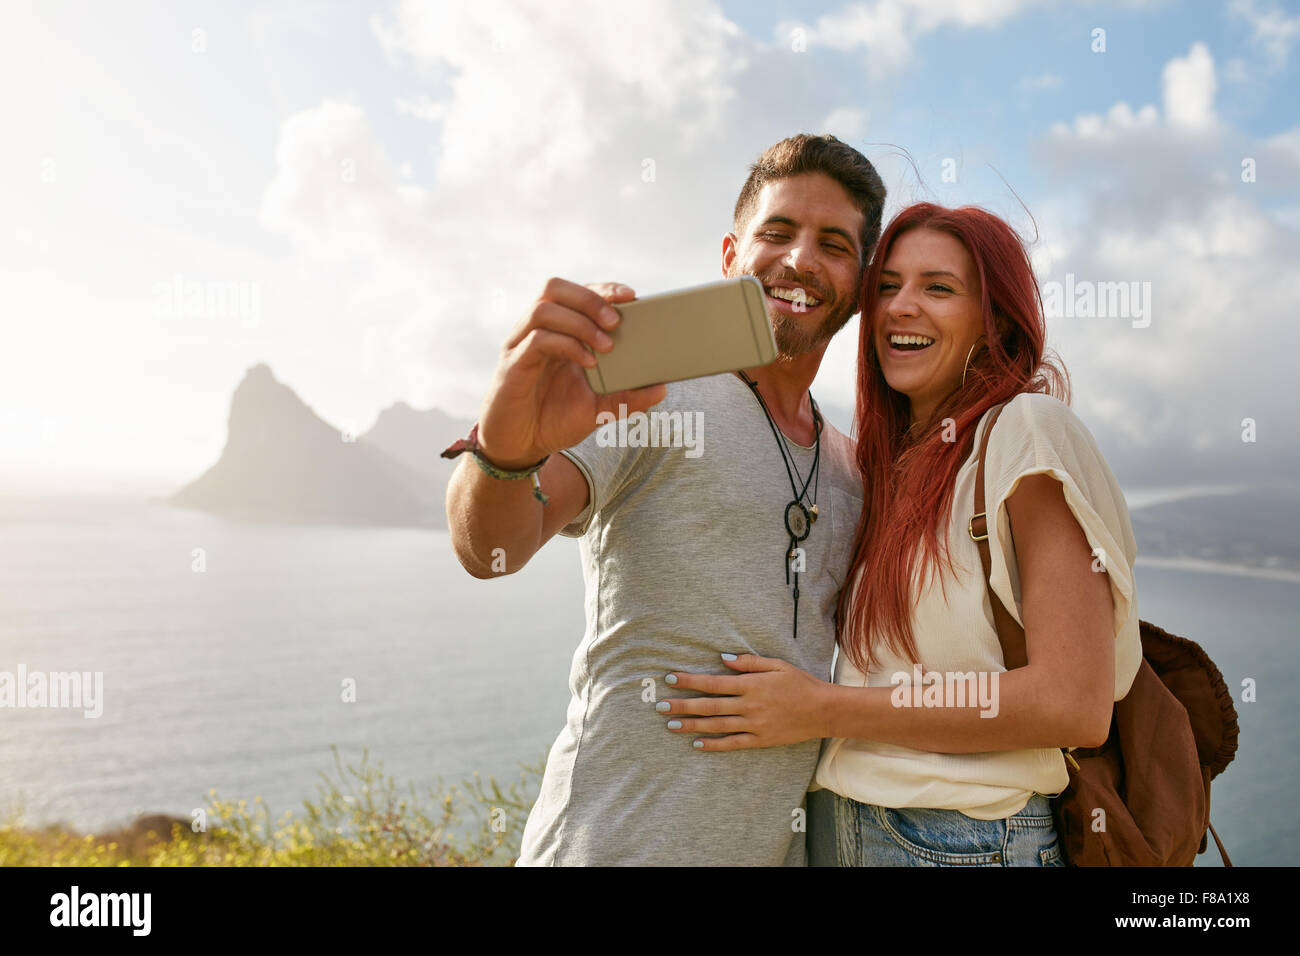 Smiling young loving couple taking self portrait outdoors in summer. Young man with his girlfriend taking selfie - Stock Image